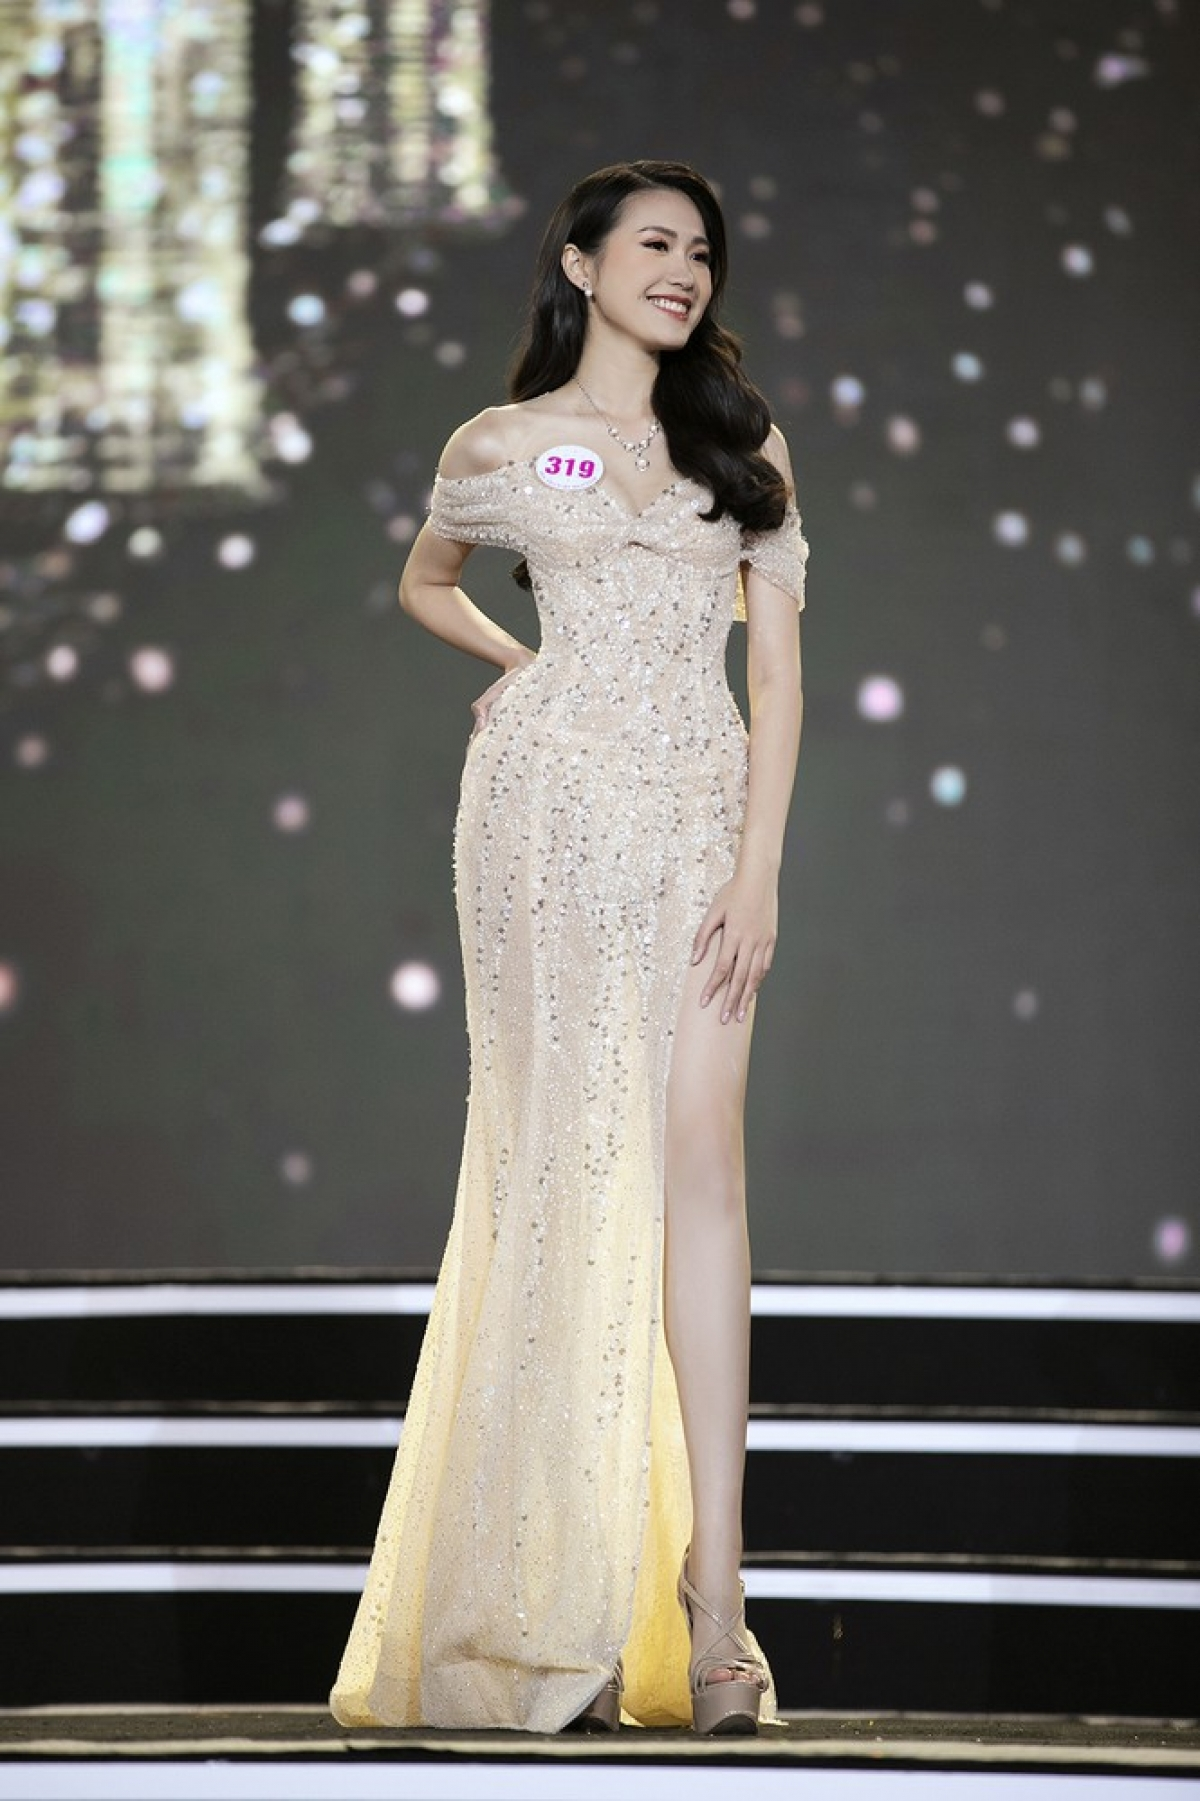 The girls from the northern region are among the 35 contestants who will compete in the final round of the national beauty contest. Let's take a look at the Top 15 northern entrants who put on an impressive performance during the recent semi-final show which was held in Hanoi. Doan Hai My from Hanoi stands at 1.67 metres tall with measurements of 76-58–89.